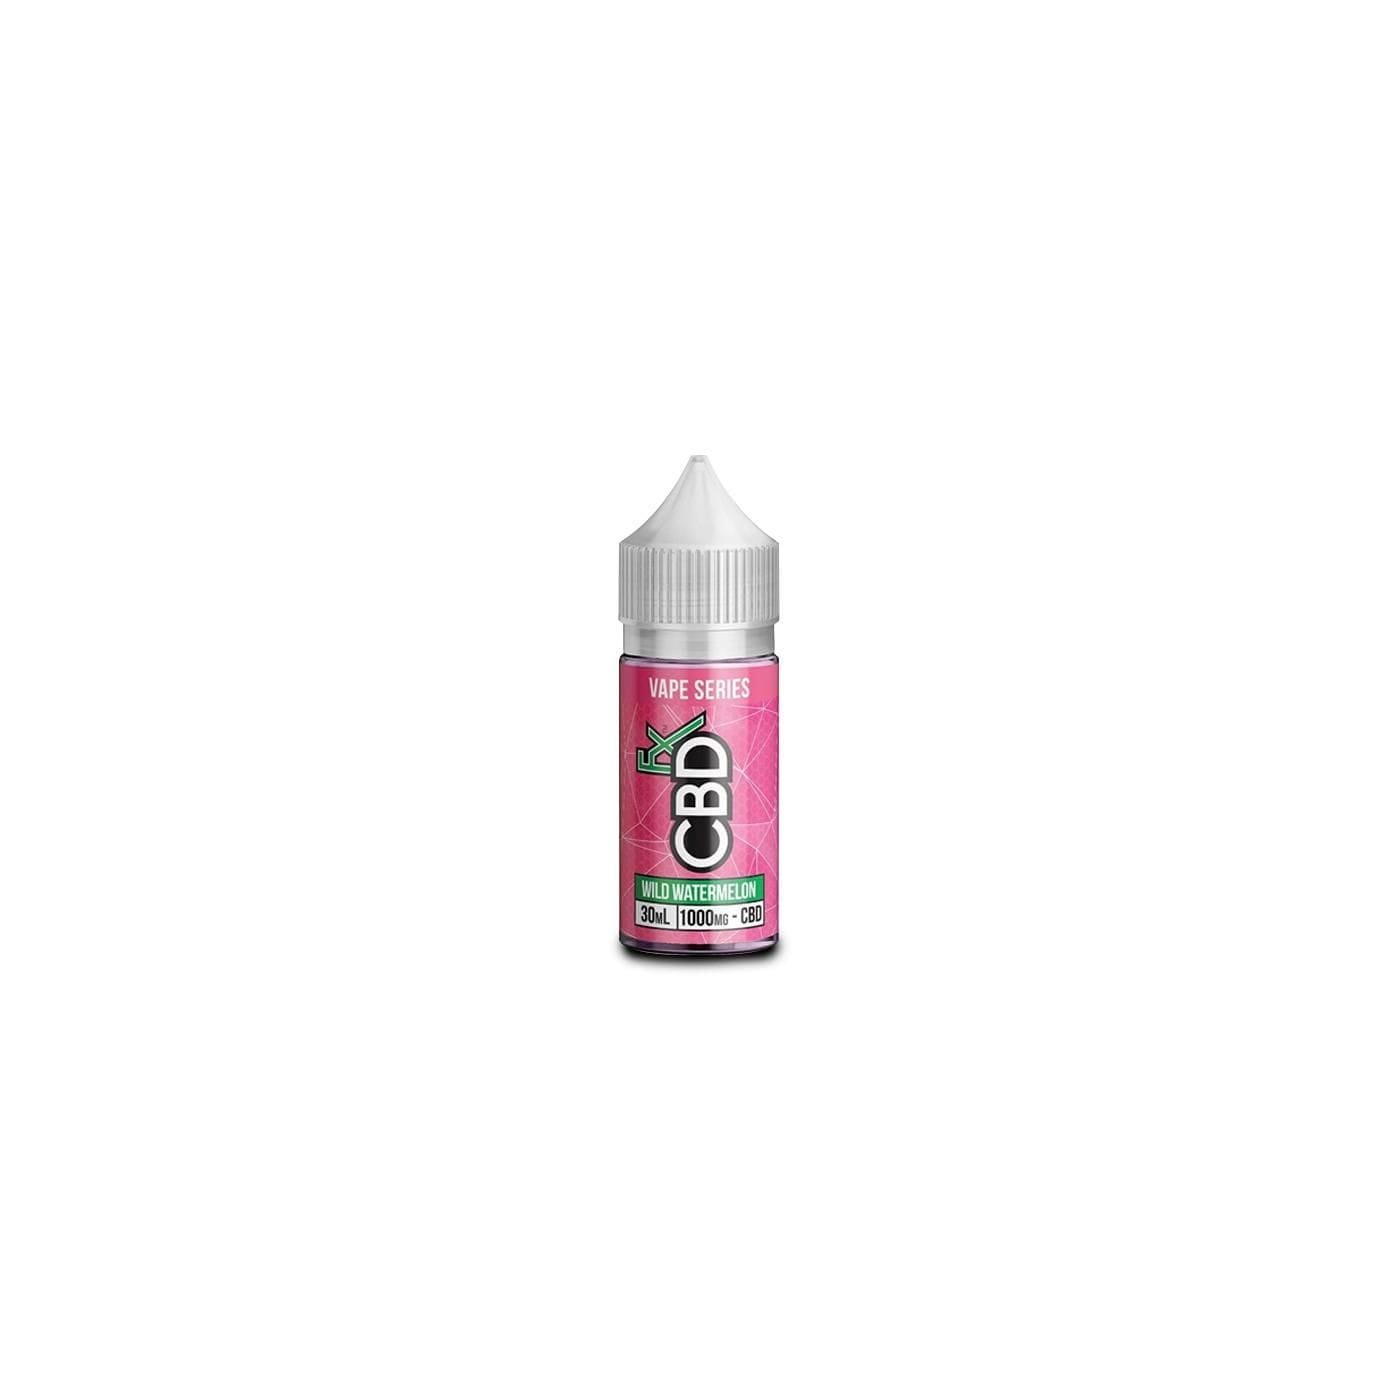 CBDfx Vape Series Wild Watermelon